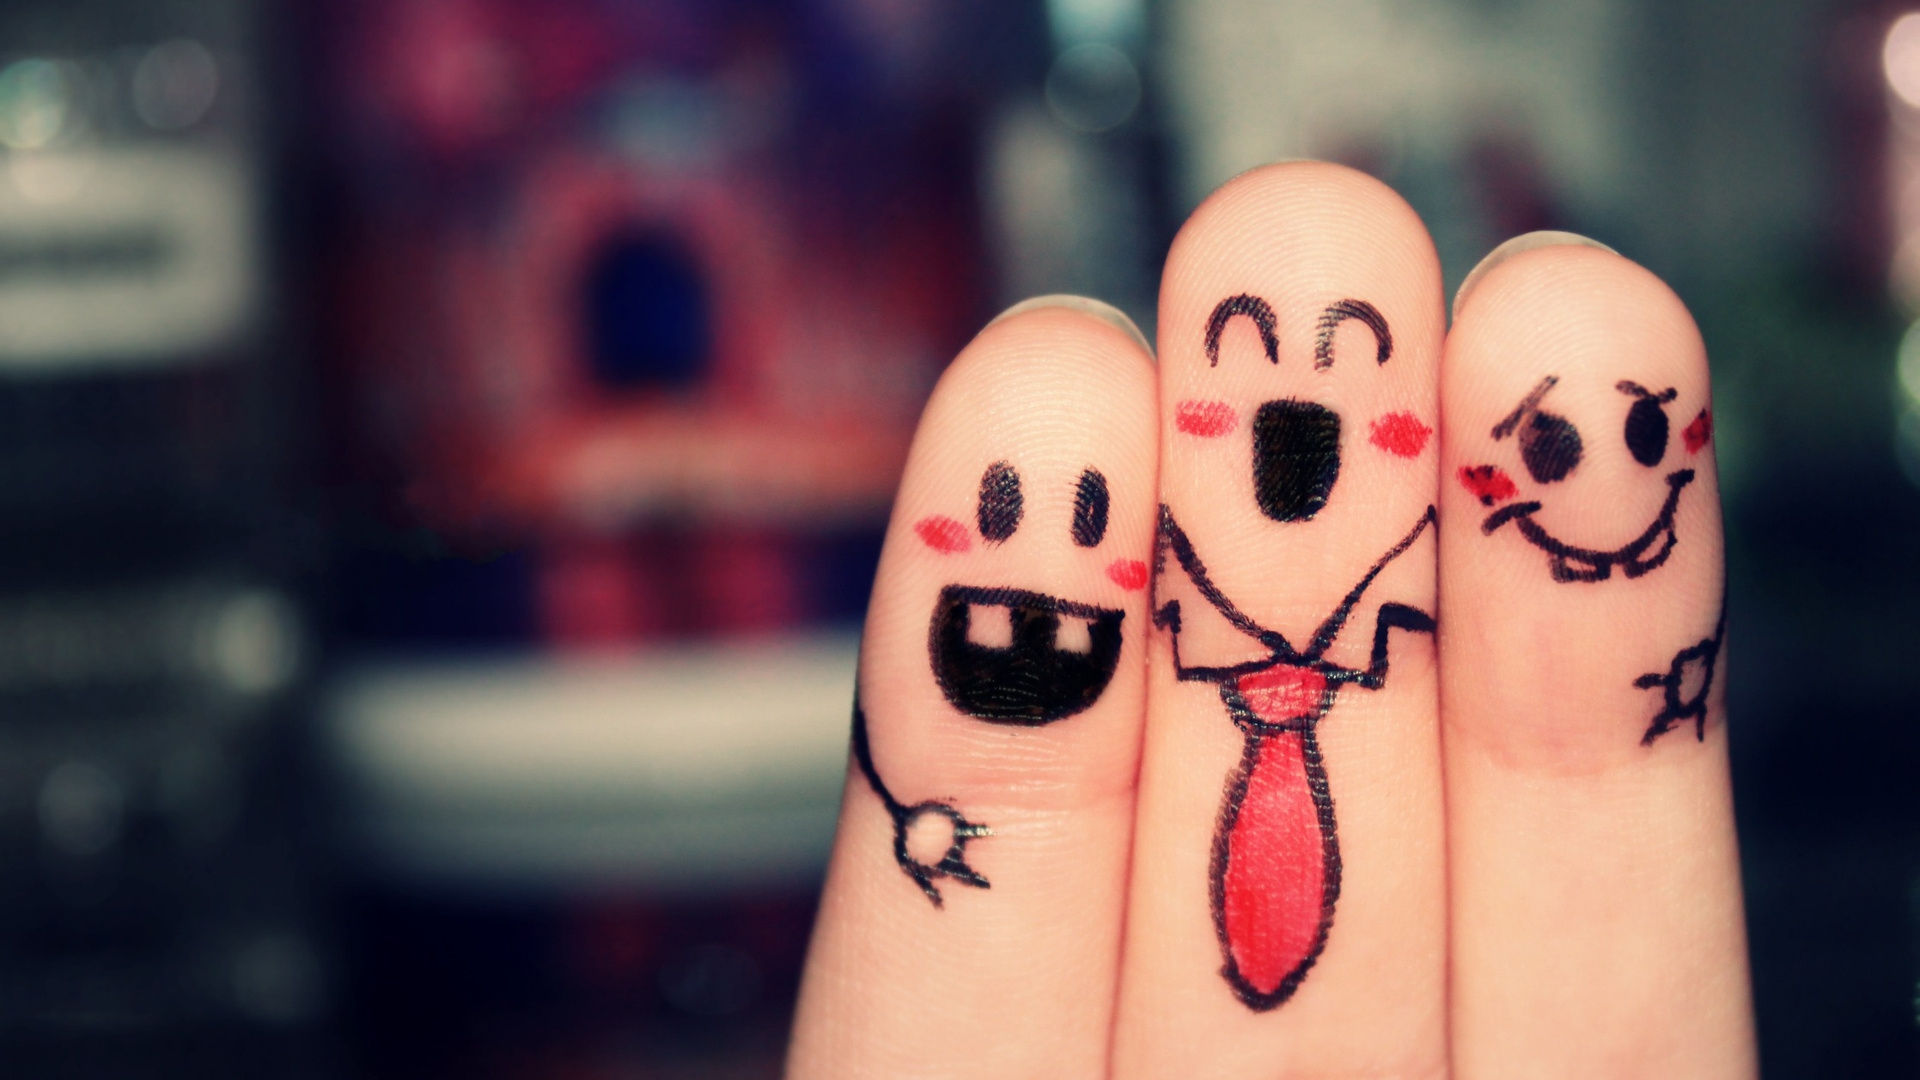 Photography - Cool  - Happy Fingers Wallpaper